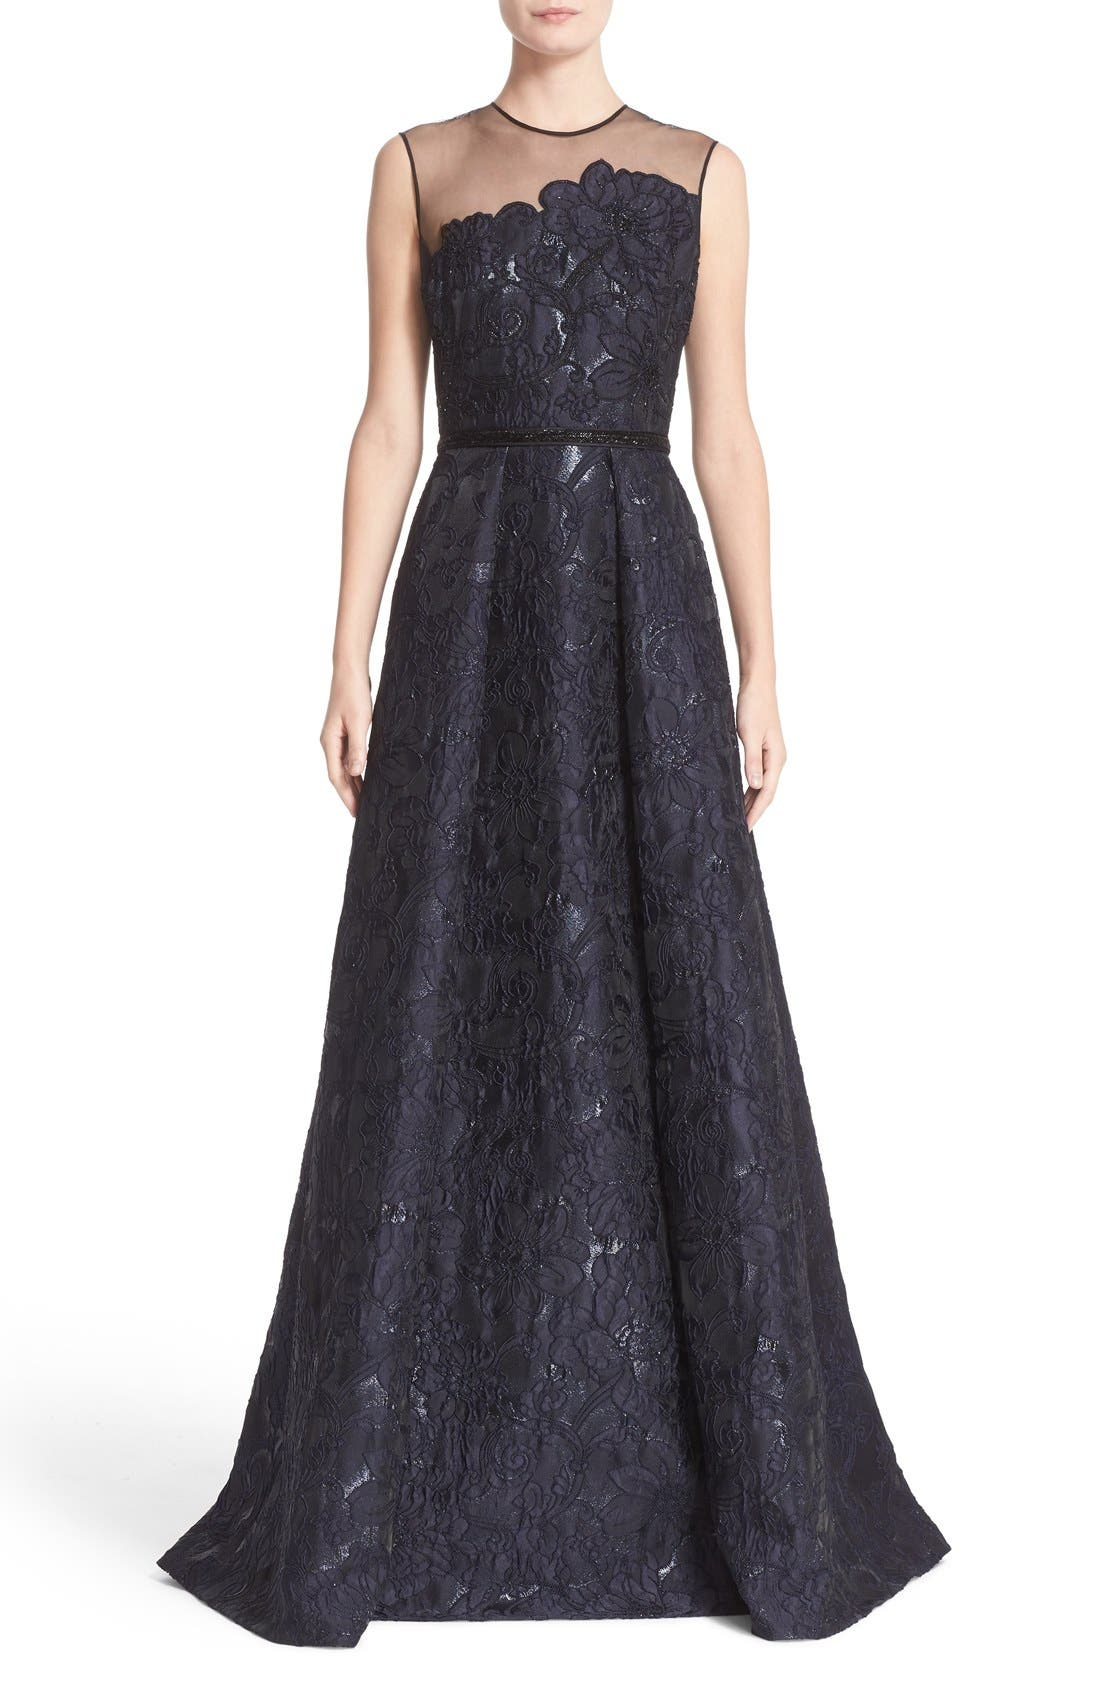 Alternate Image 1 Selected - Carmen Marc Valvo Couture Illusion Yoke Embroidered Jacquard A-Line Gown